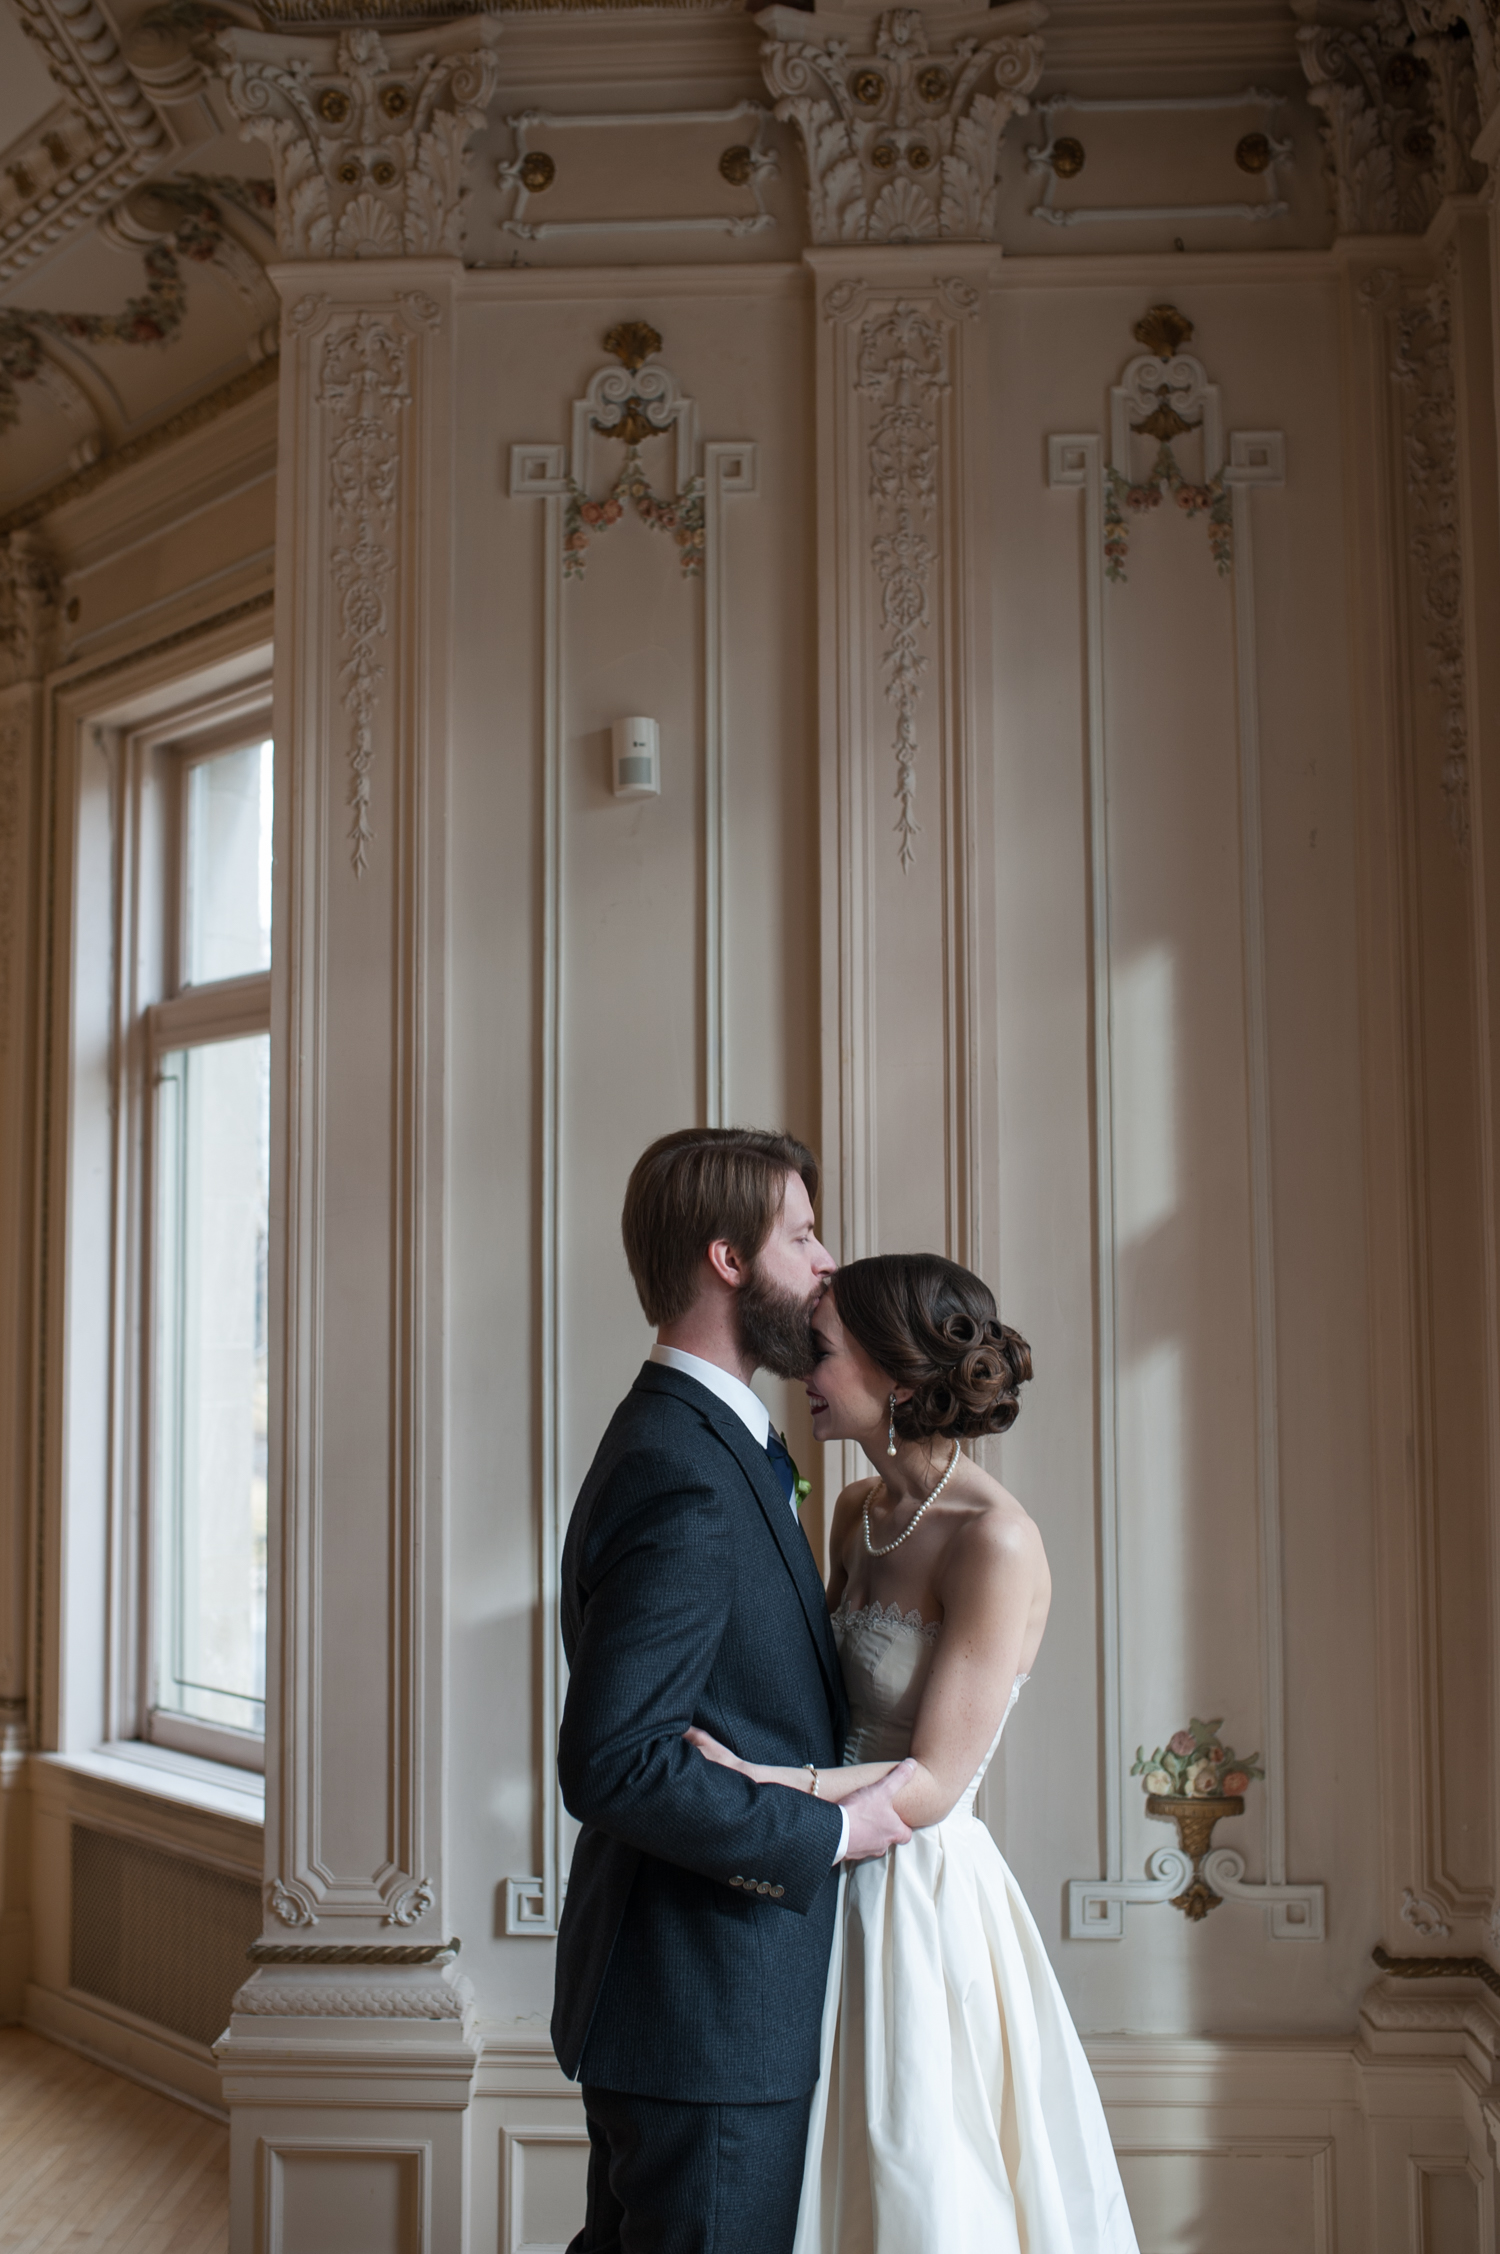 groom_kissing_brides_forehead_as_she_smiles_inside_classy_wedding_venue.jpeg